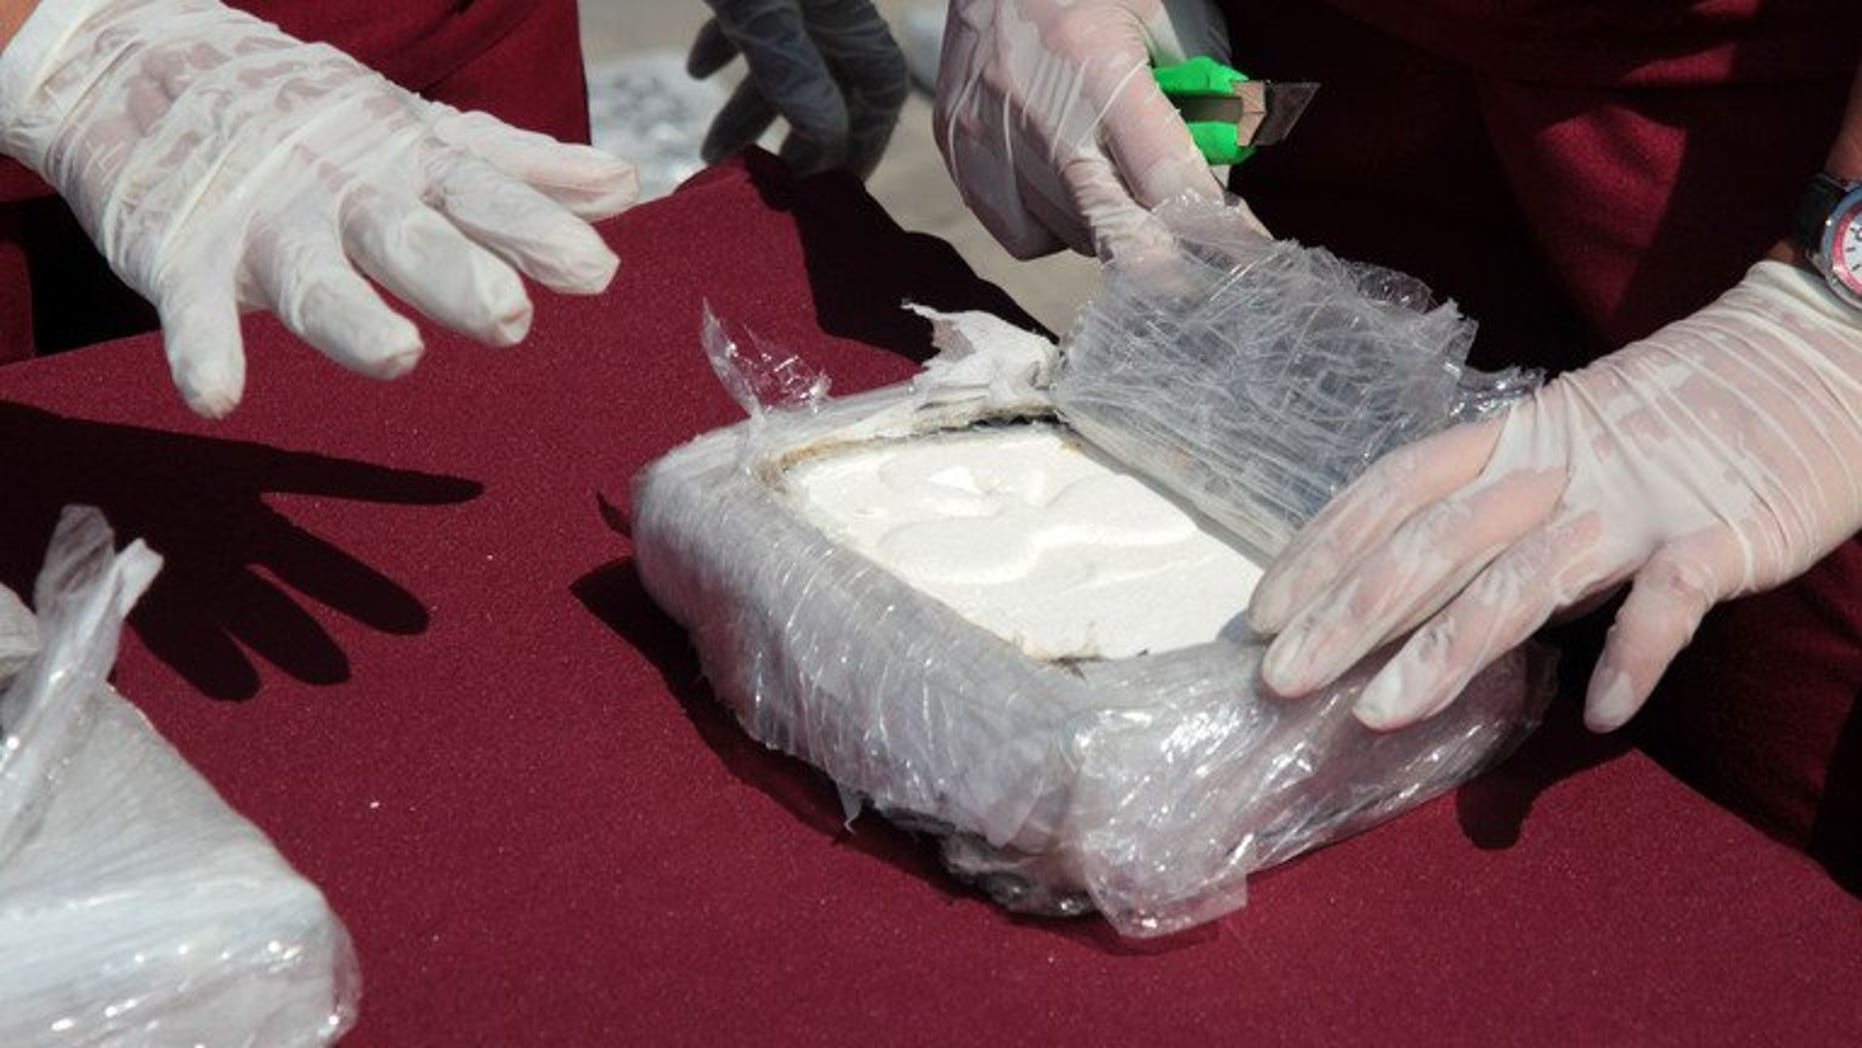 Criminology specialists test cocaine seized in Maracaibo, Zulia state, Venezuela, on April 25, 2013. Spanish police said Monday they had arrested a notorious British drug dealer, Brian Charrington, whom they accused of running an international trafficking racket involving cocaine from Venezuela.